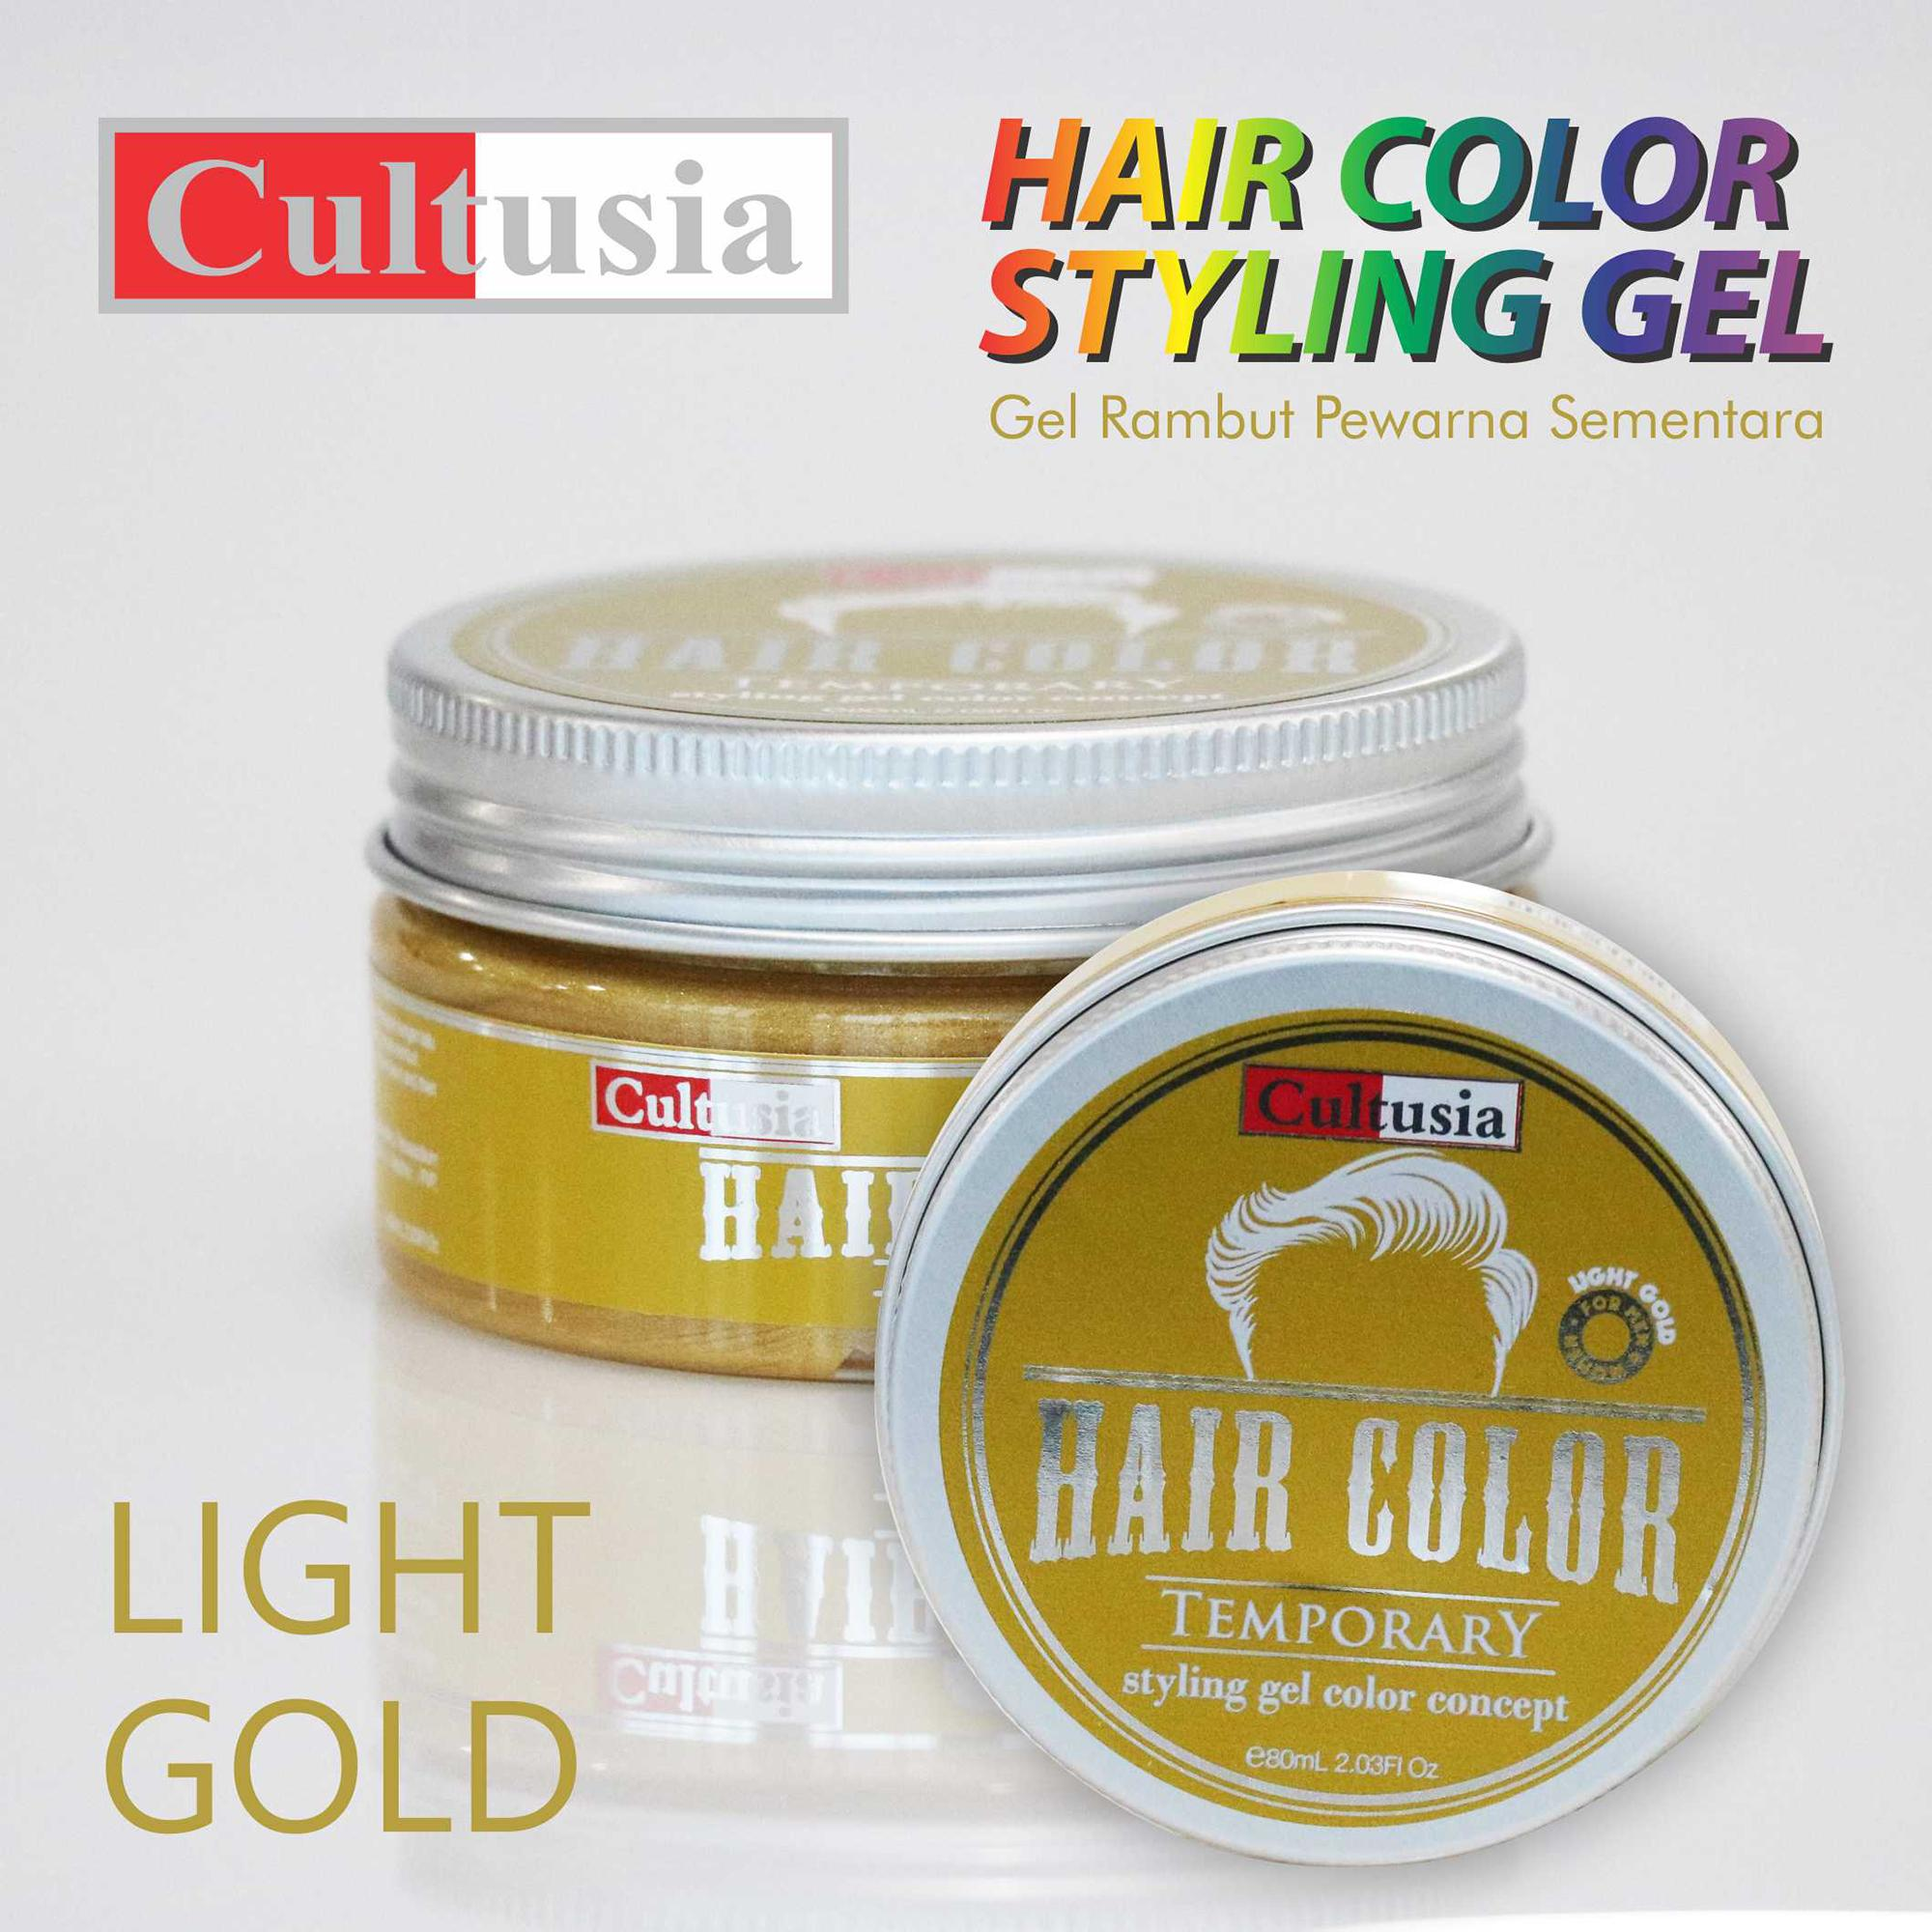 Daftar Harga The Saem Snail Soothing Gel Gold November 2018 Paling Terupdate Cultusia Hair Color Styling Temporary Light 80ml